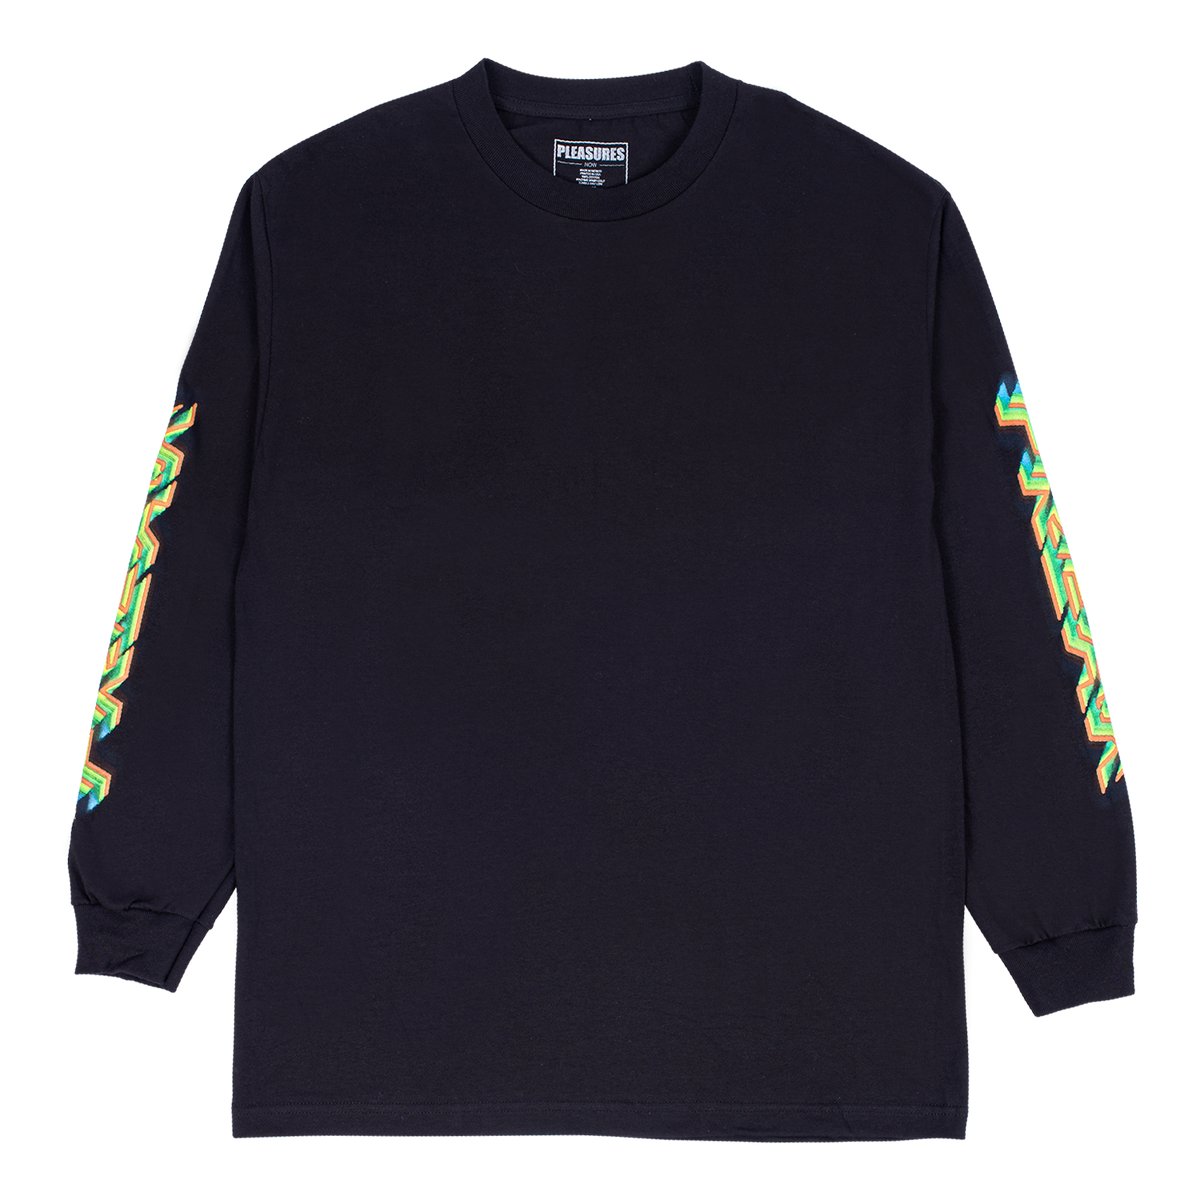 Freak L/S T-Shirt - Black